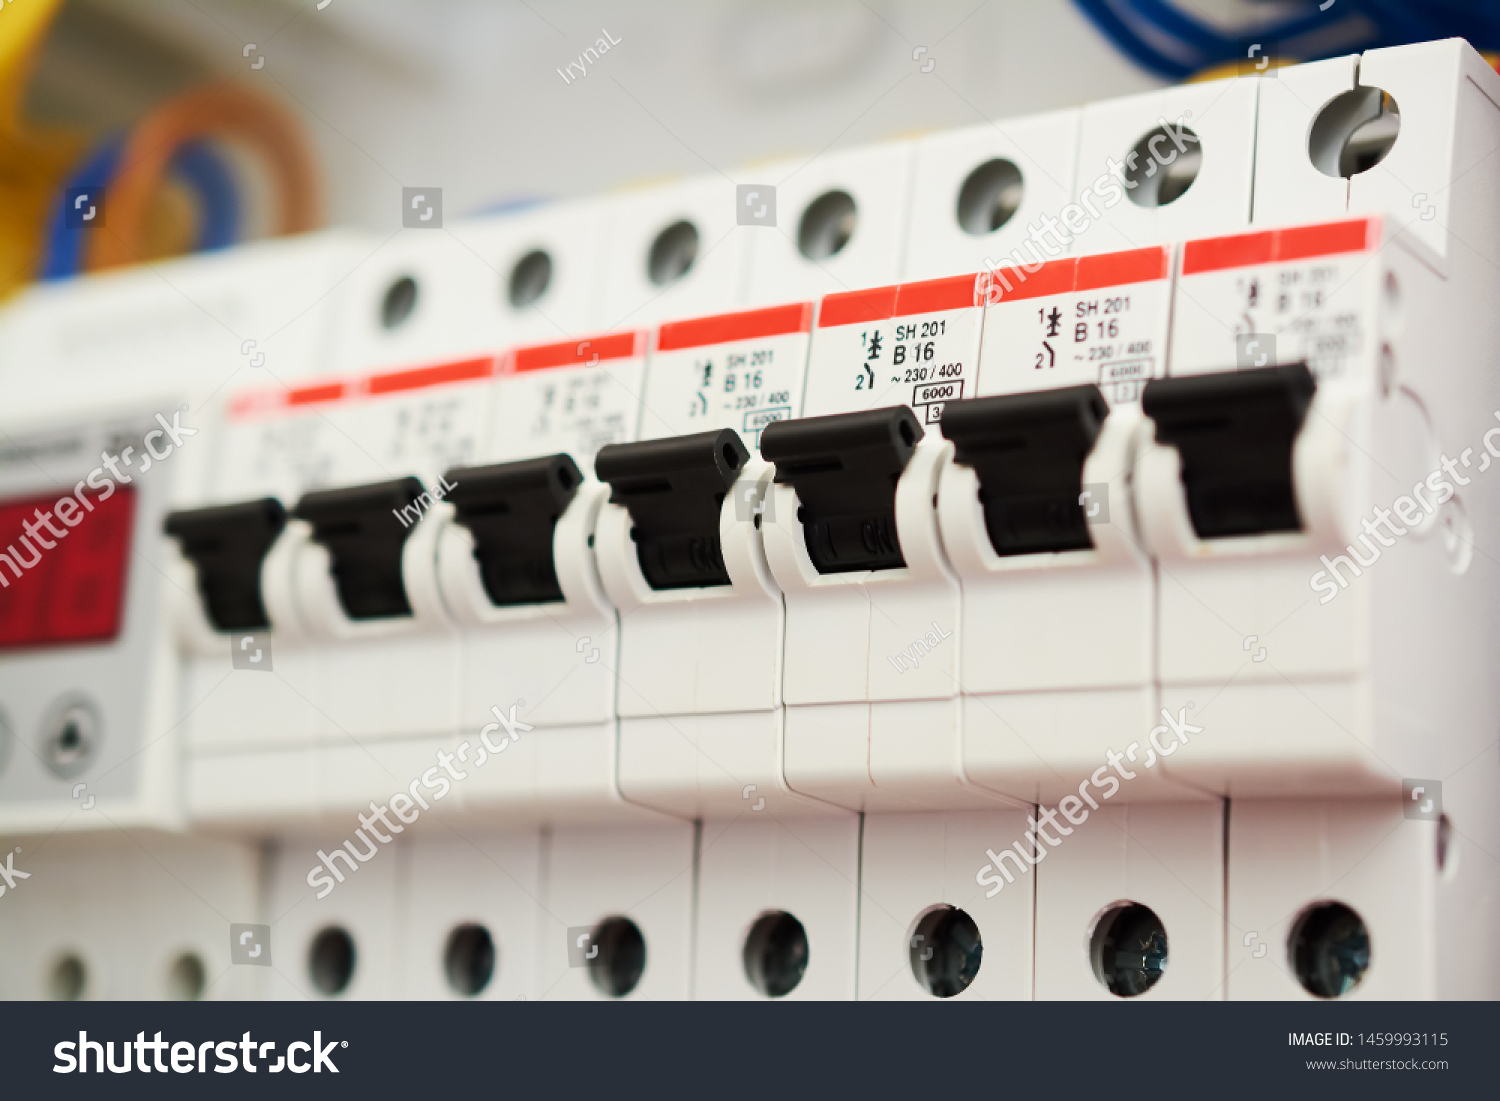 power fuse box fuse box power supply circuit breakers stock photo  edit now power fuse box home fuse box power supply circuit breakers